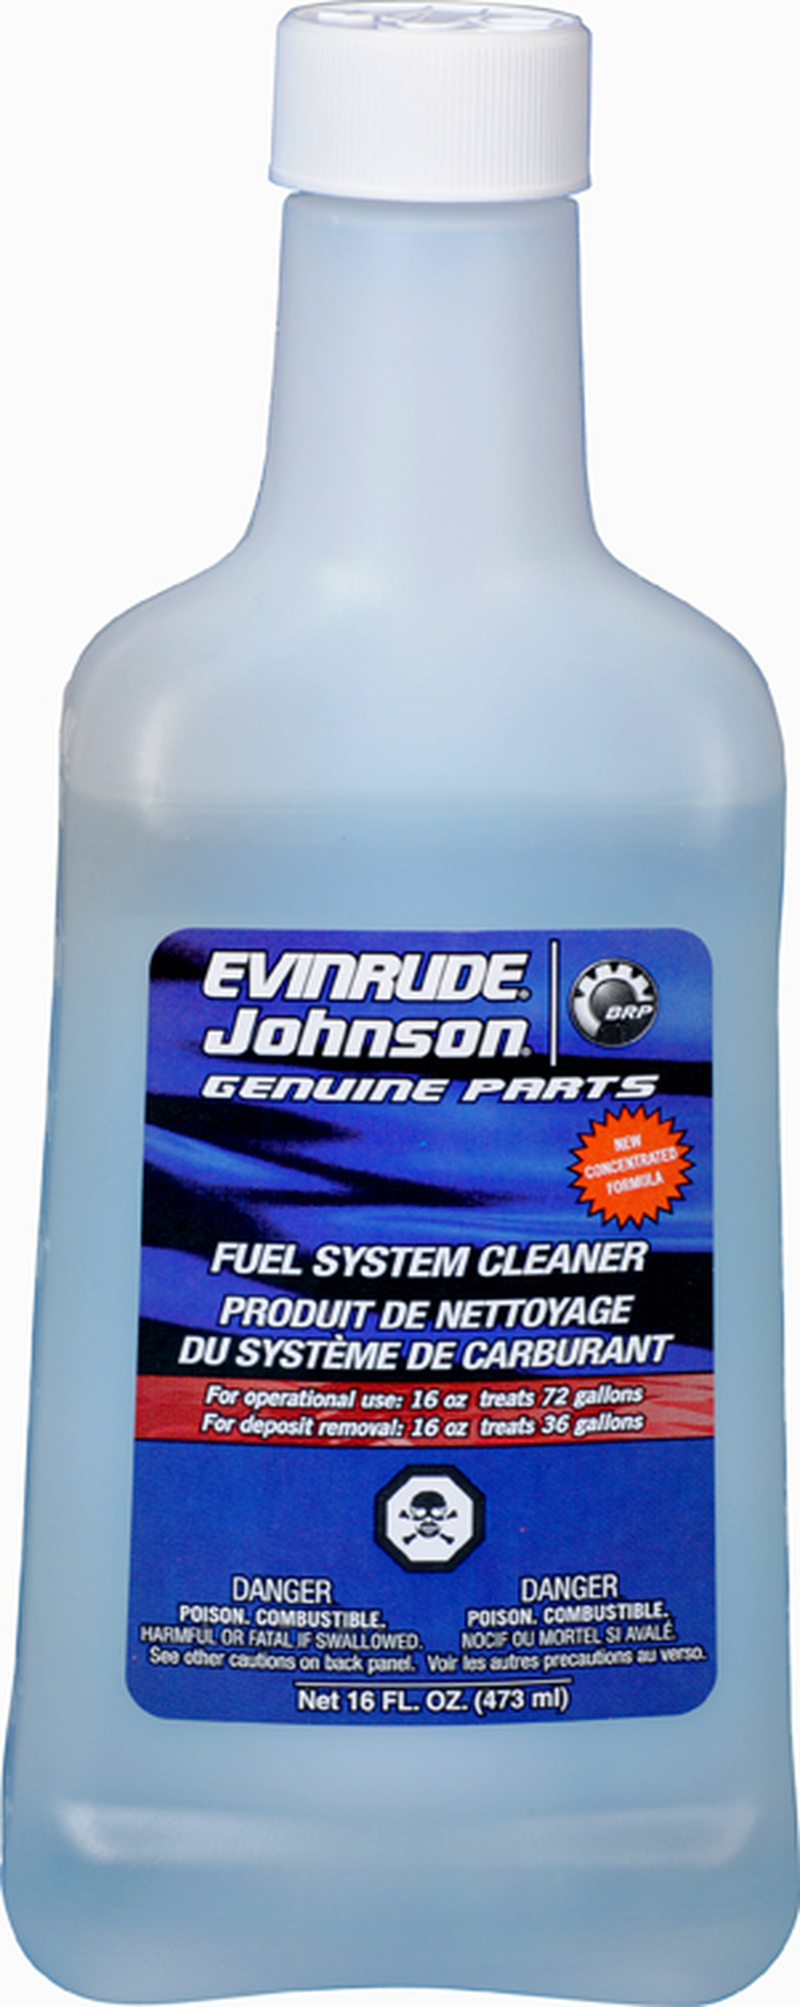 Evinrude - Fuel system cleaner